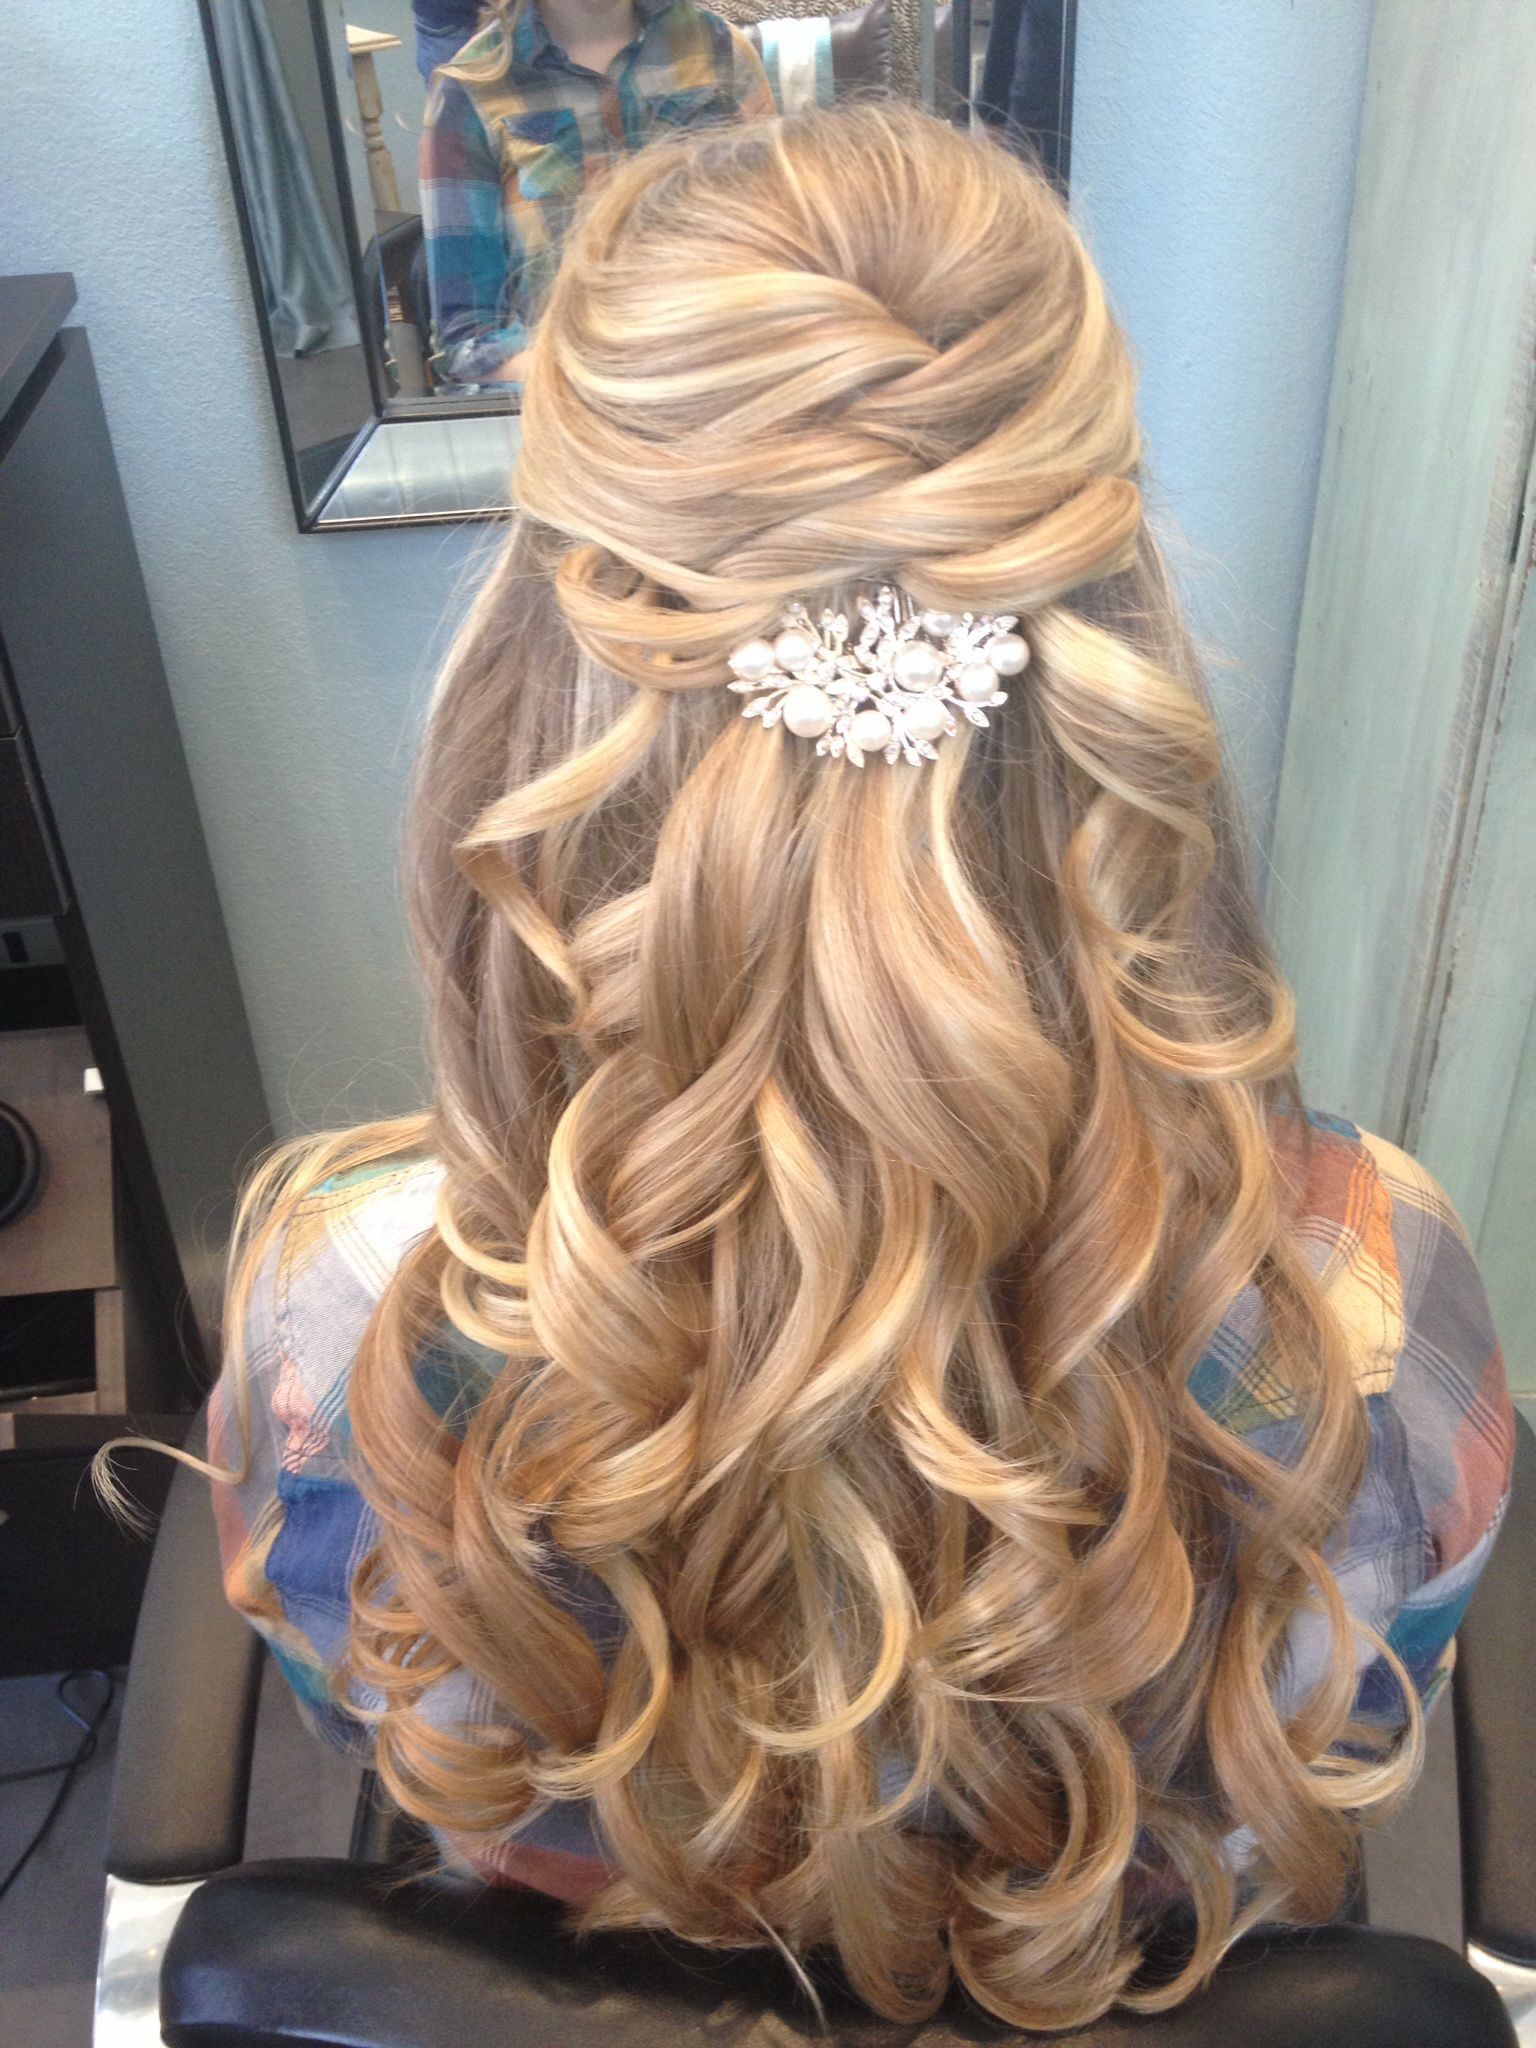 Cosas Que Pasan With Famous Diagonal Waterfall Braid In Half Up Bridal Hairstyles (View 1 of 20)